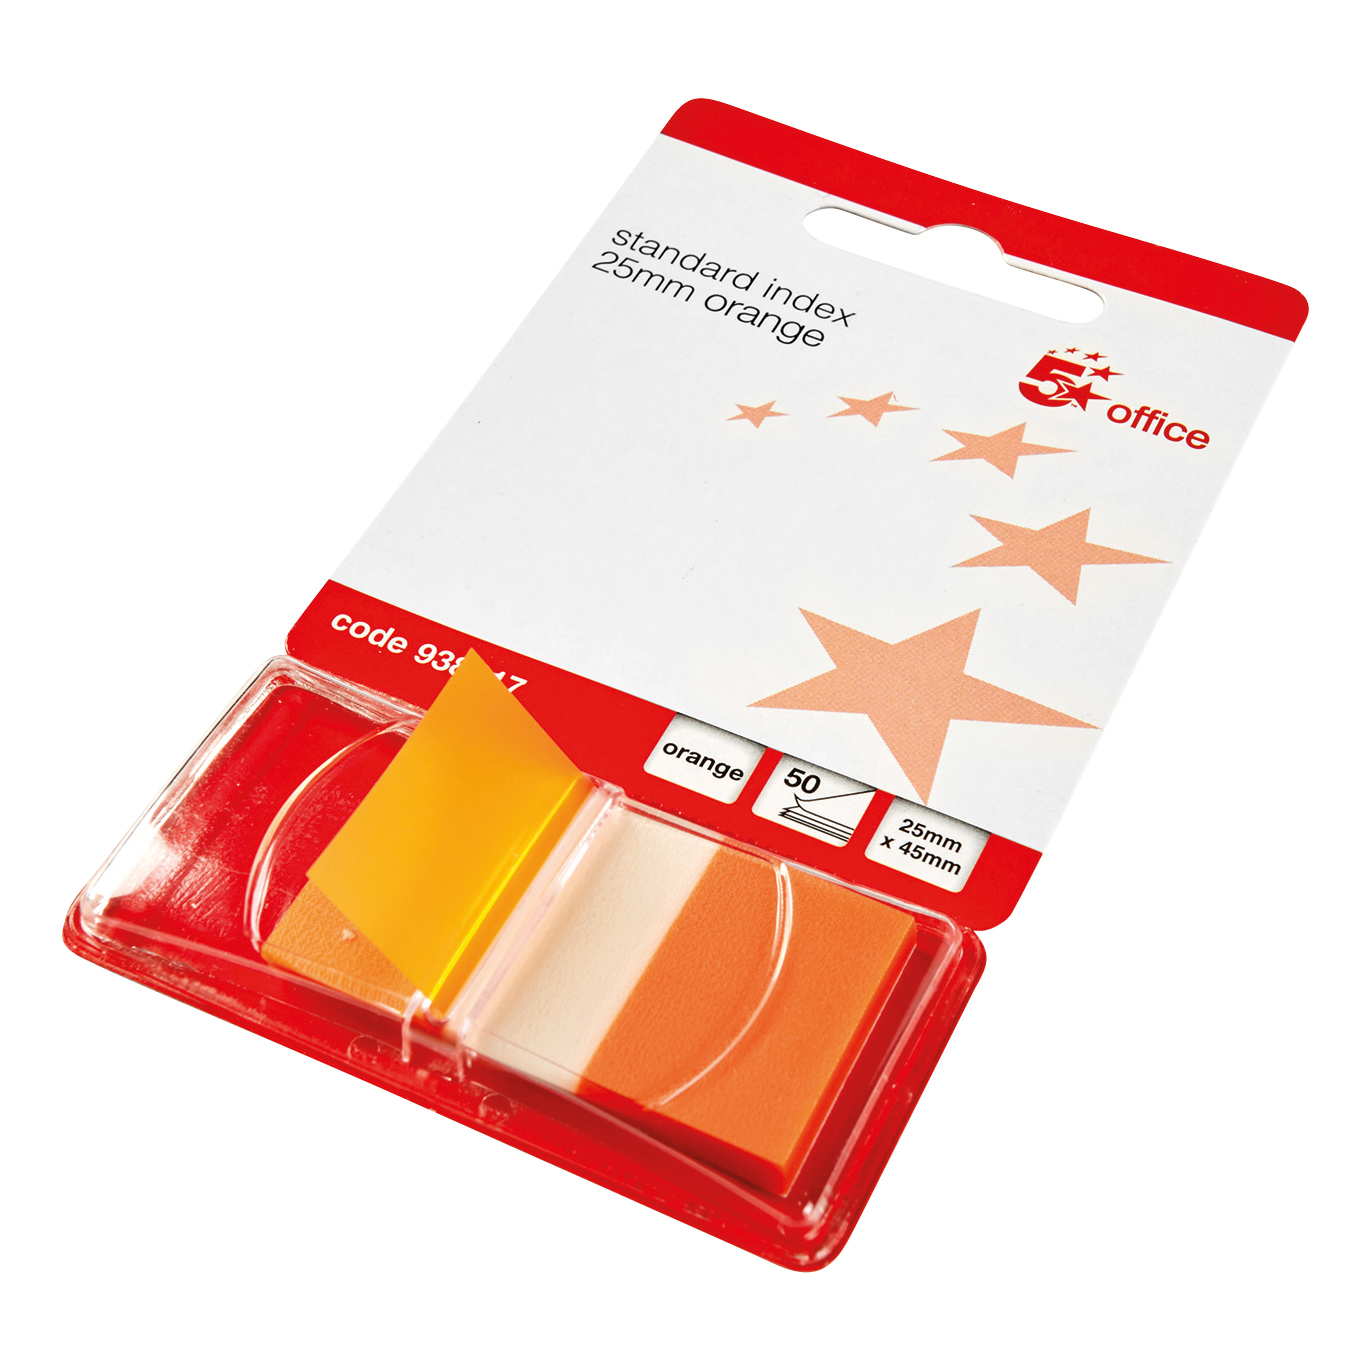 5 Star Office Standard Index Flags 50 Sheets per Pad 25x45mm Orange [Pack 5]